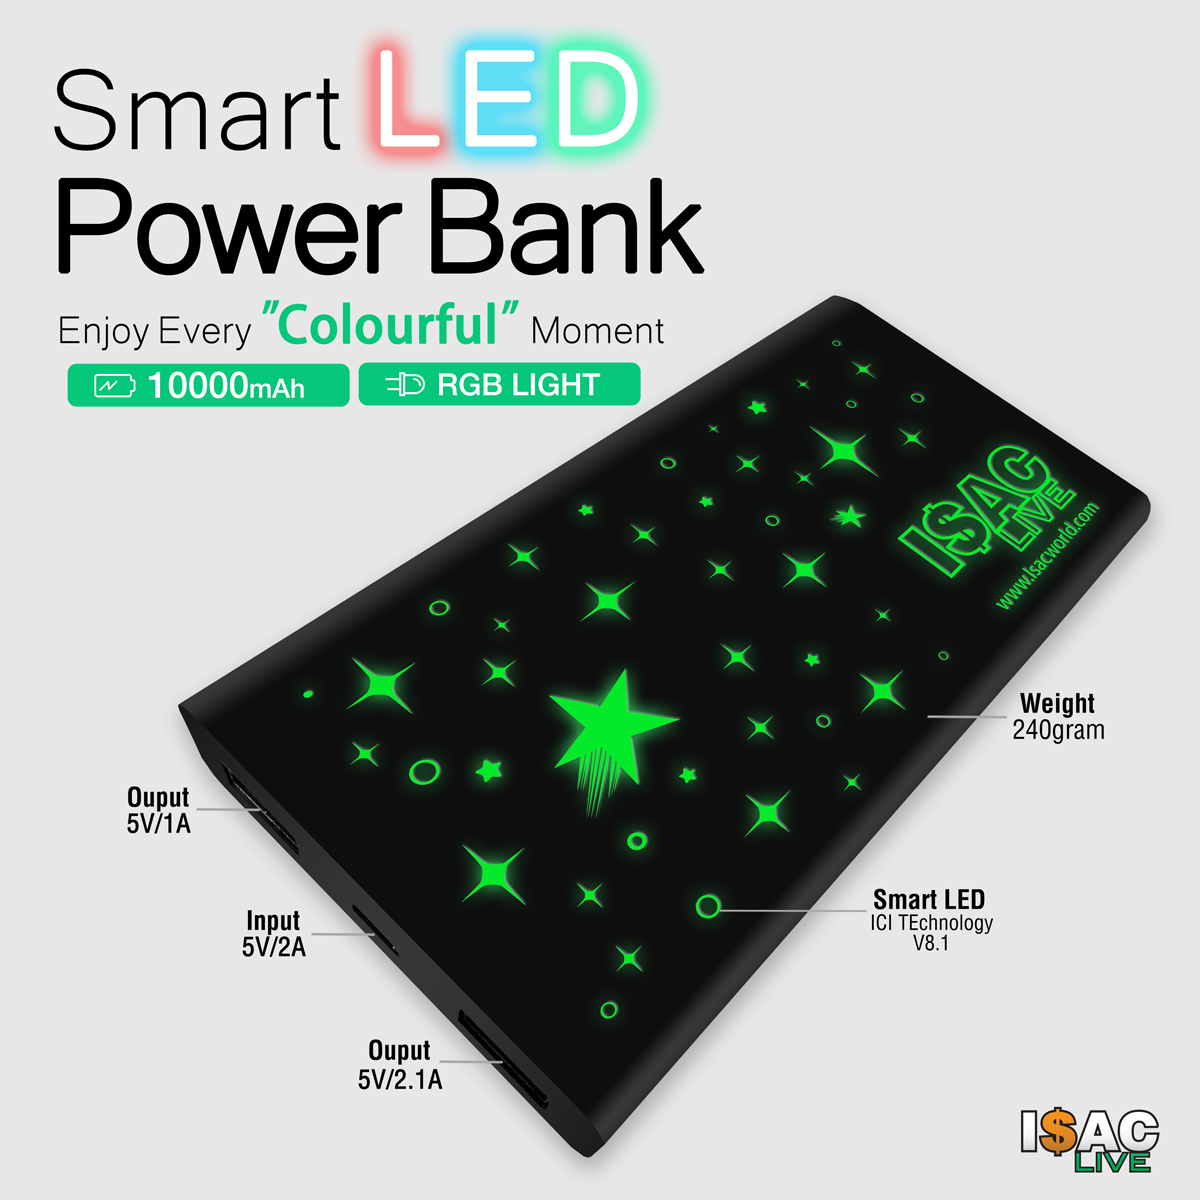 Isaclive Smart LED Powerbank